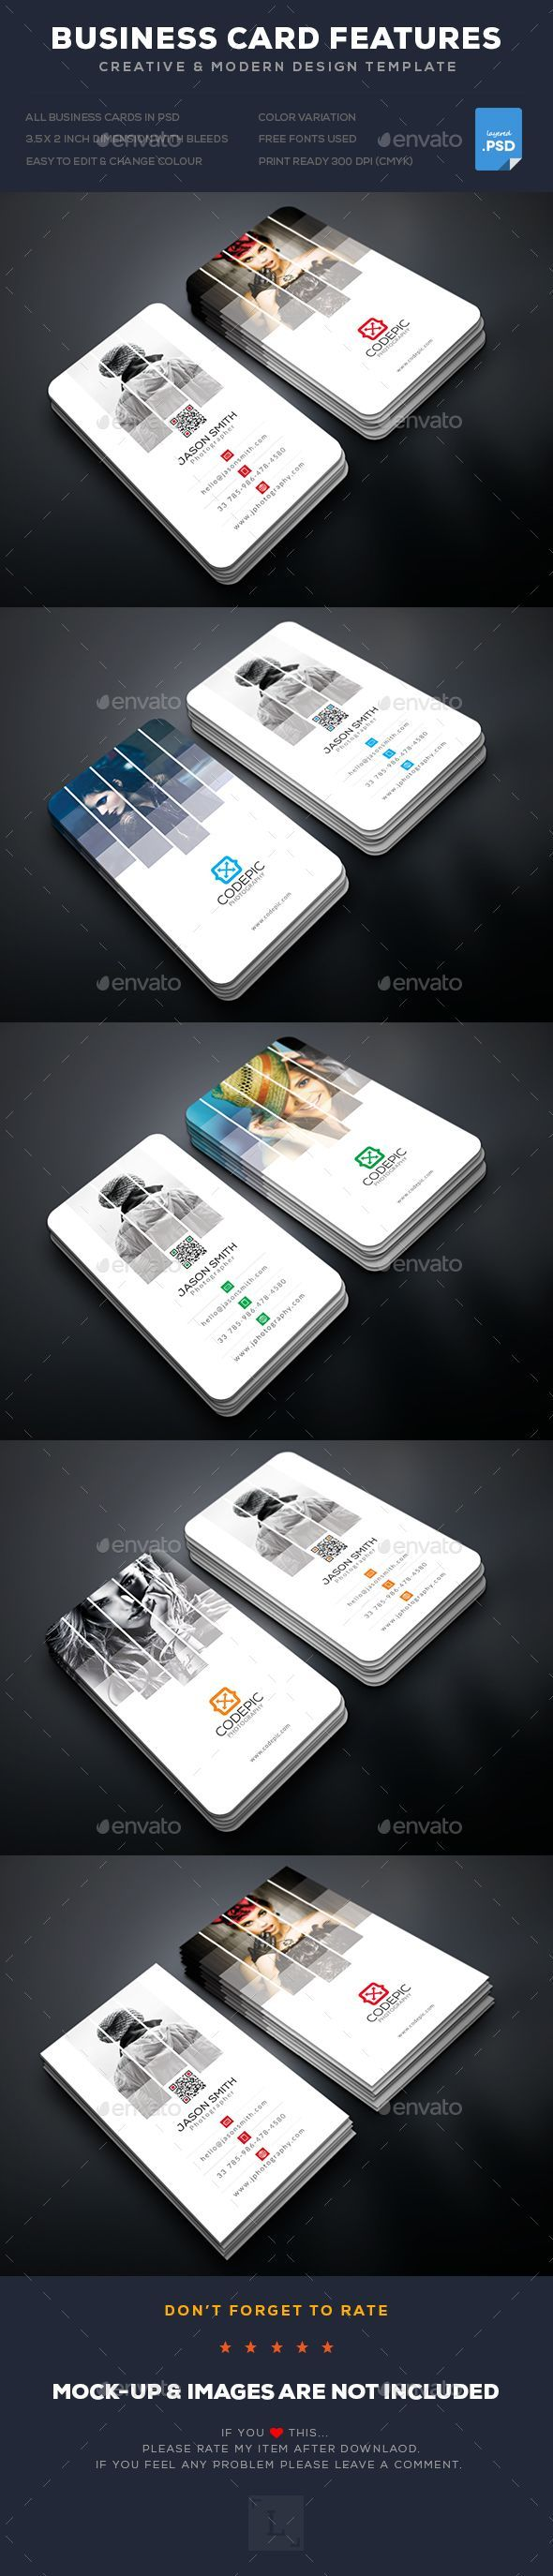 Shade Photography Business Card Template PSD. Download here: https://graphicriver.net/item/shade-photography-business-card/17089901?ref=ksioks